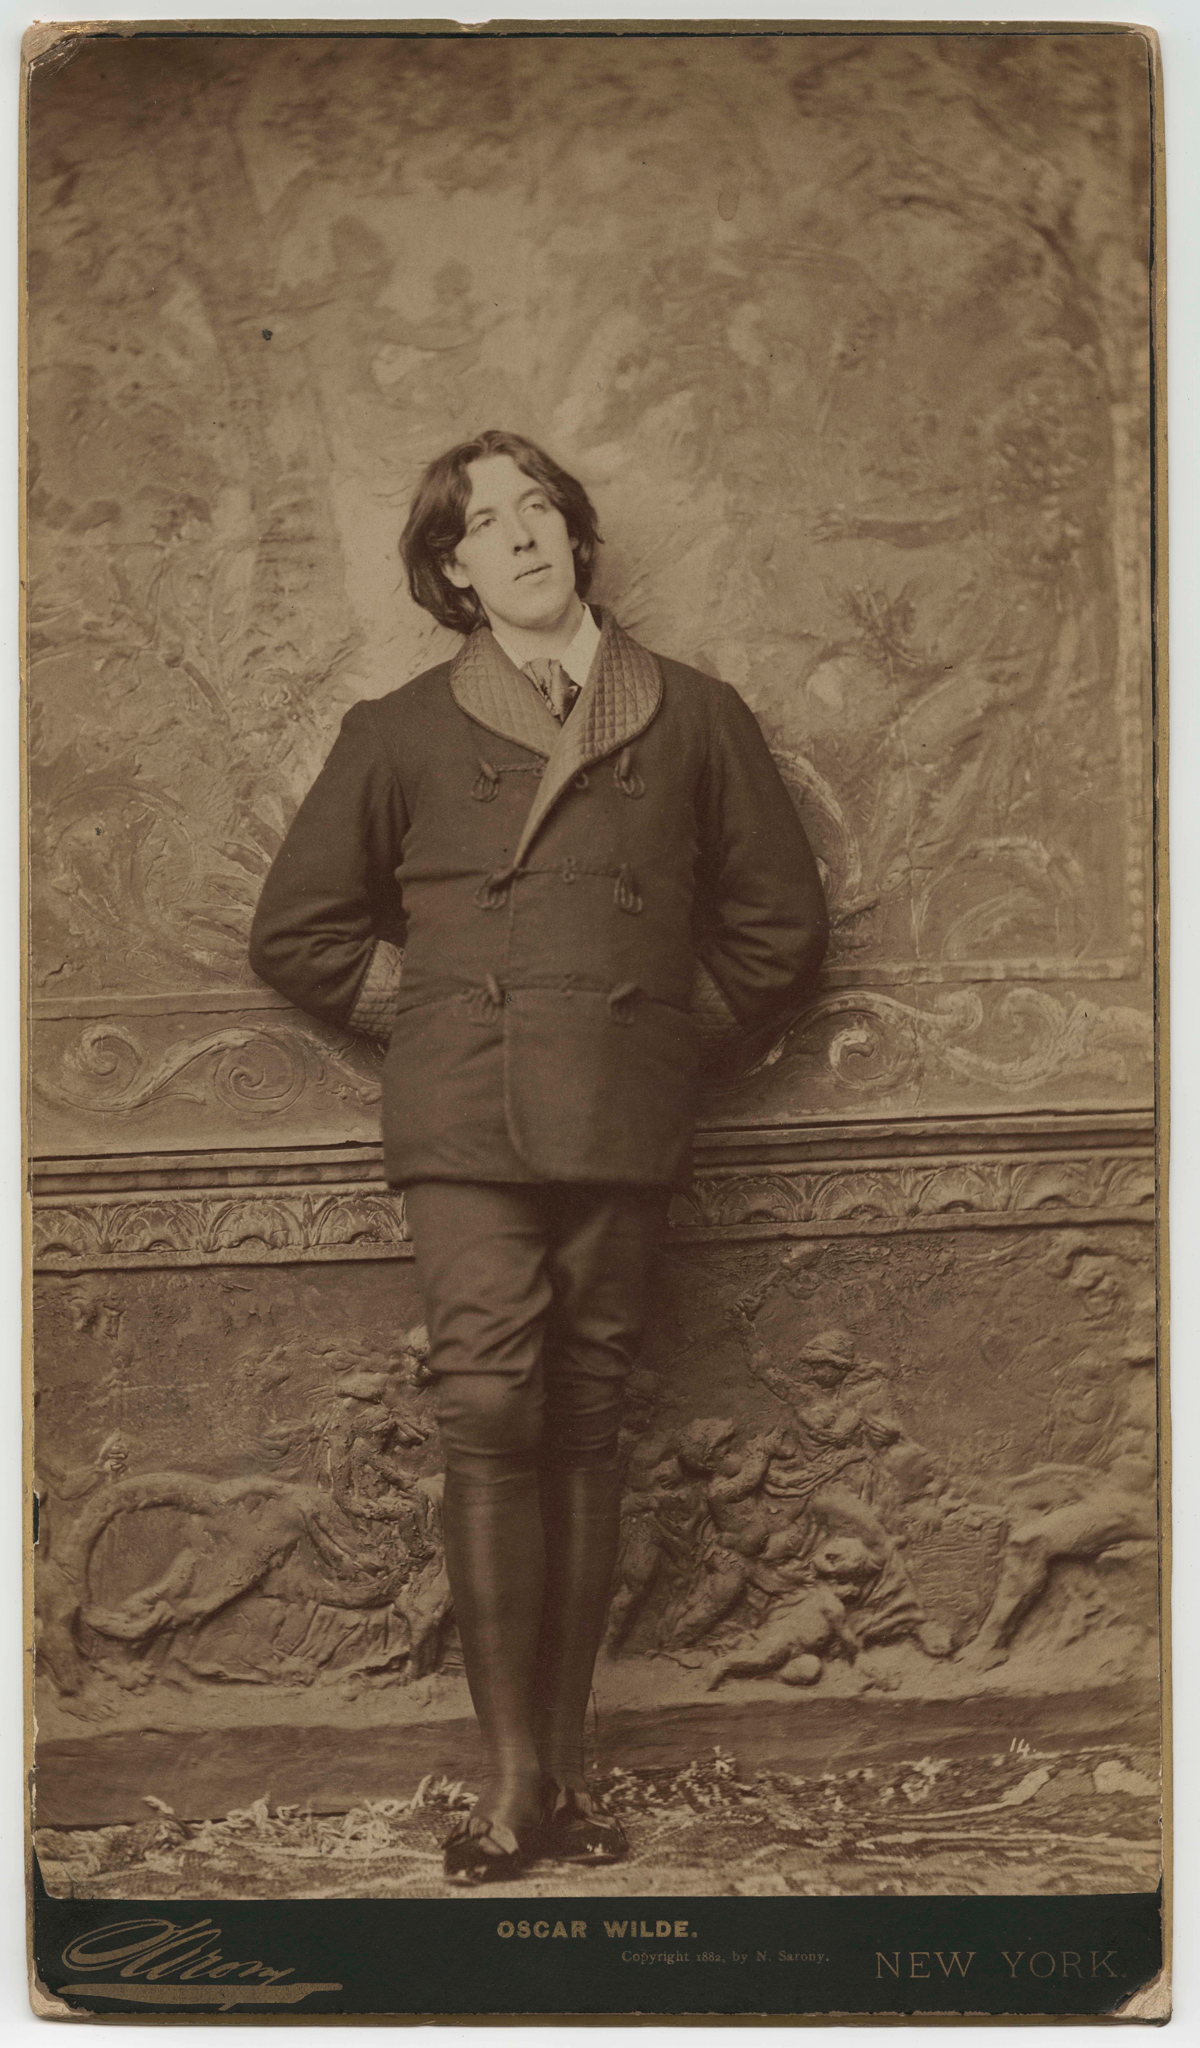 Oscar Wilde in New York, 1882, from the Oscar Wilde Literary File at the Harry Ransom Center.